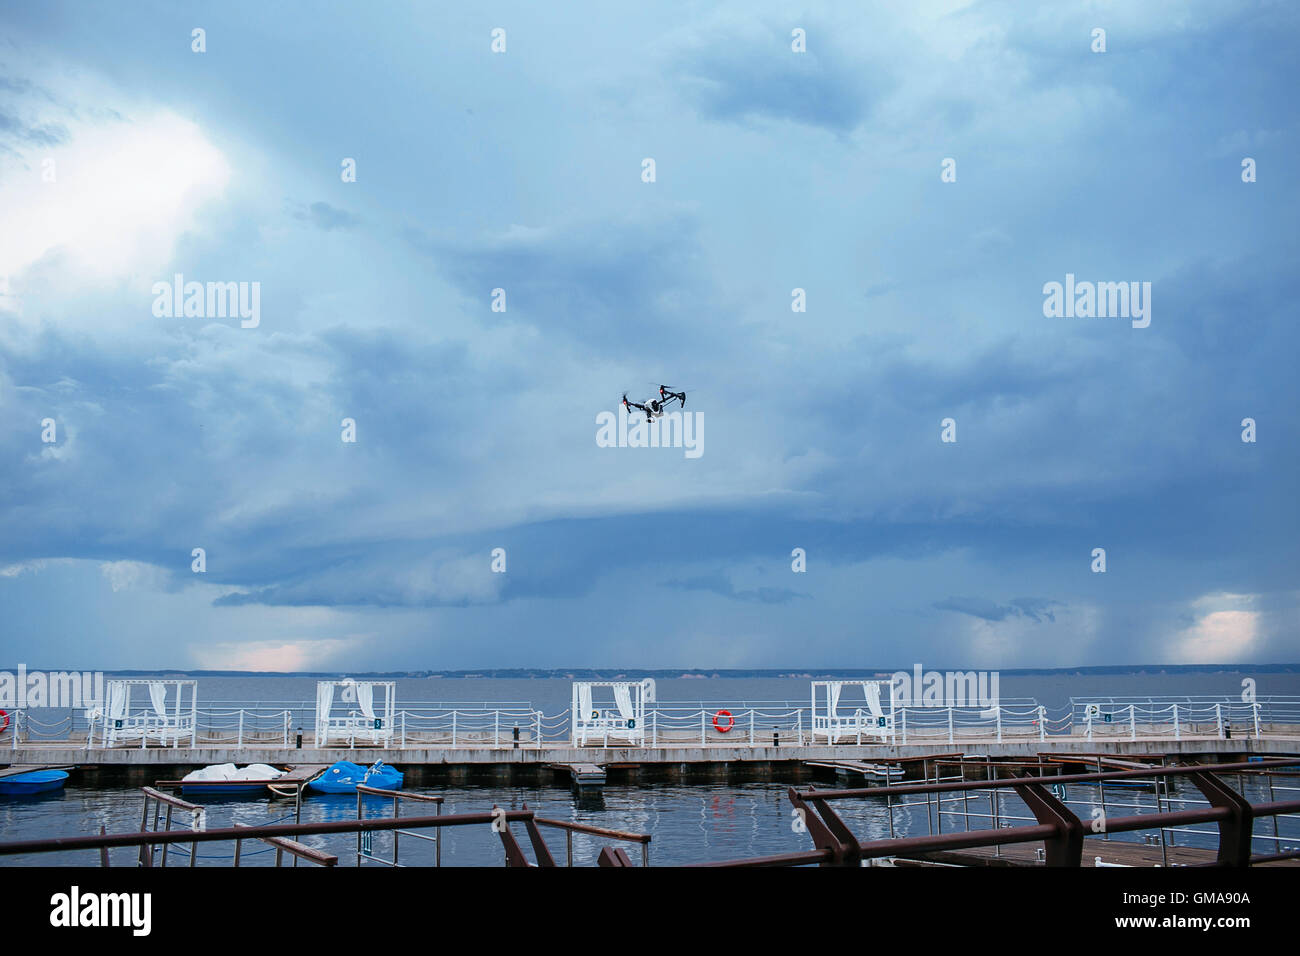 quadrocopter drone with remote control. thunderclouds storm, gloomily. stormy sky over the lake. - Stock Image